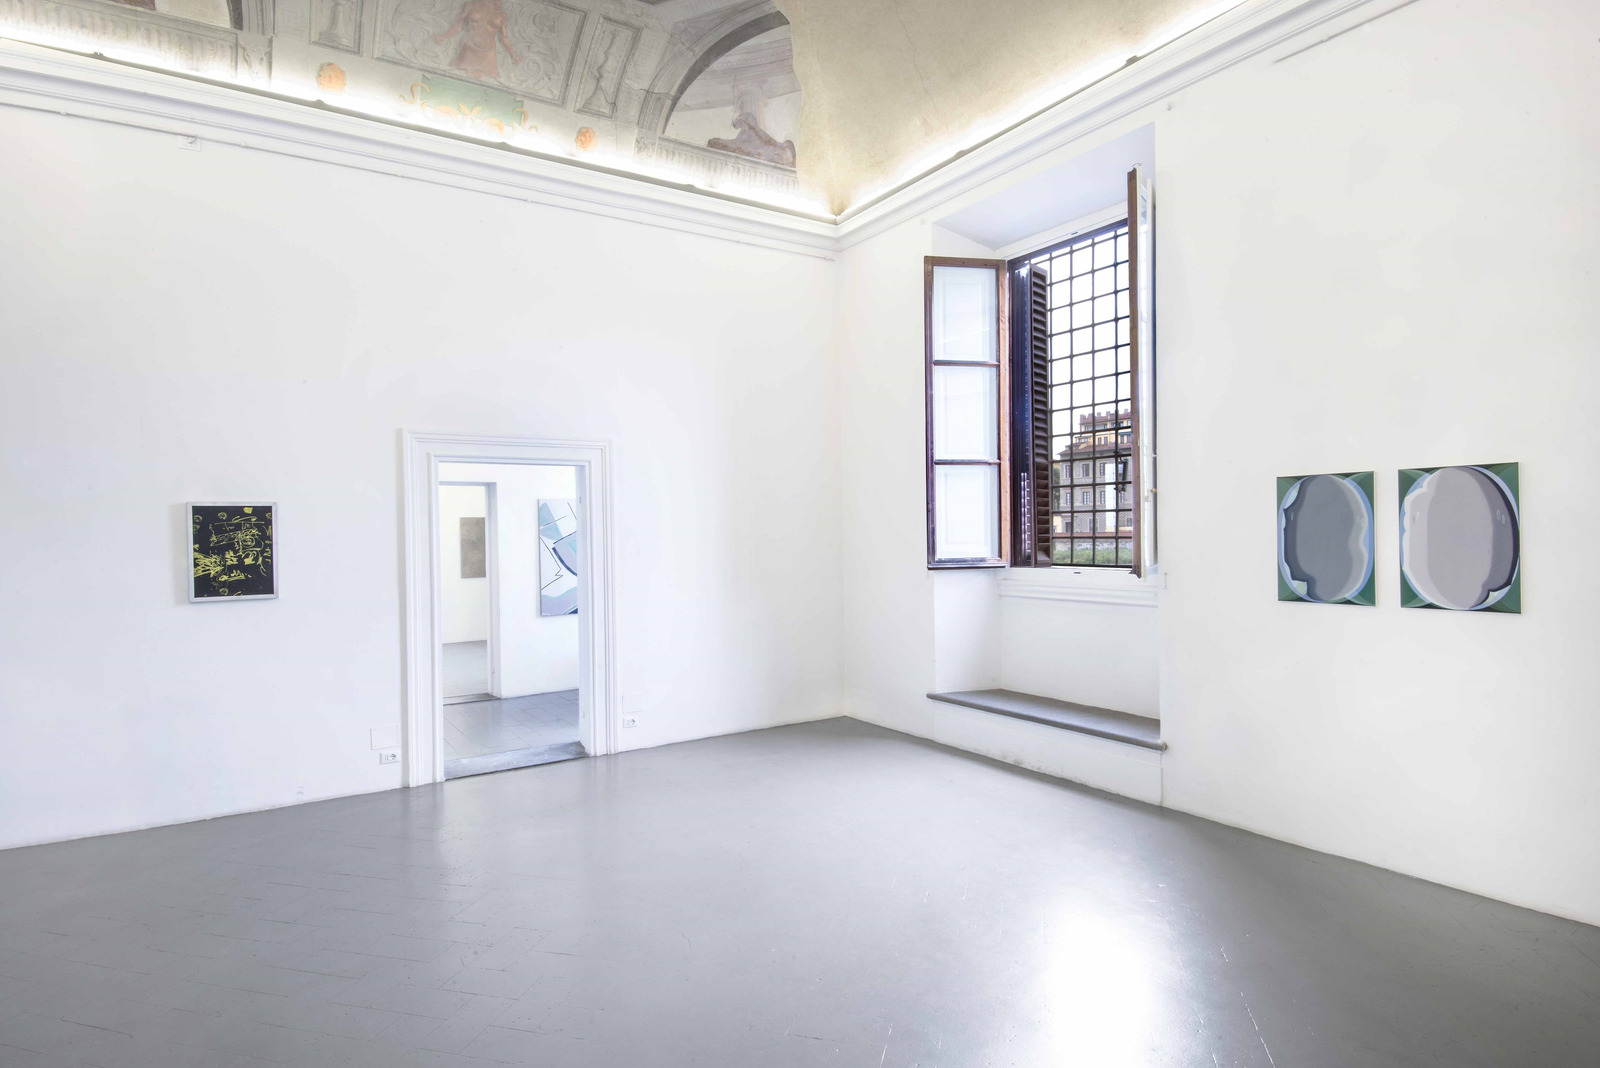 8.Installation View, Sofia Leiby, Hanna Hur, Zoé de Soumagnat, Heather Guertin. Courtesy of Eduardo Secci Contemporary